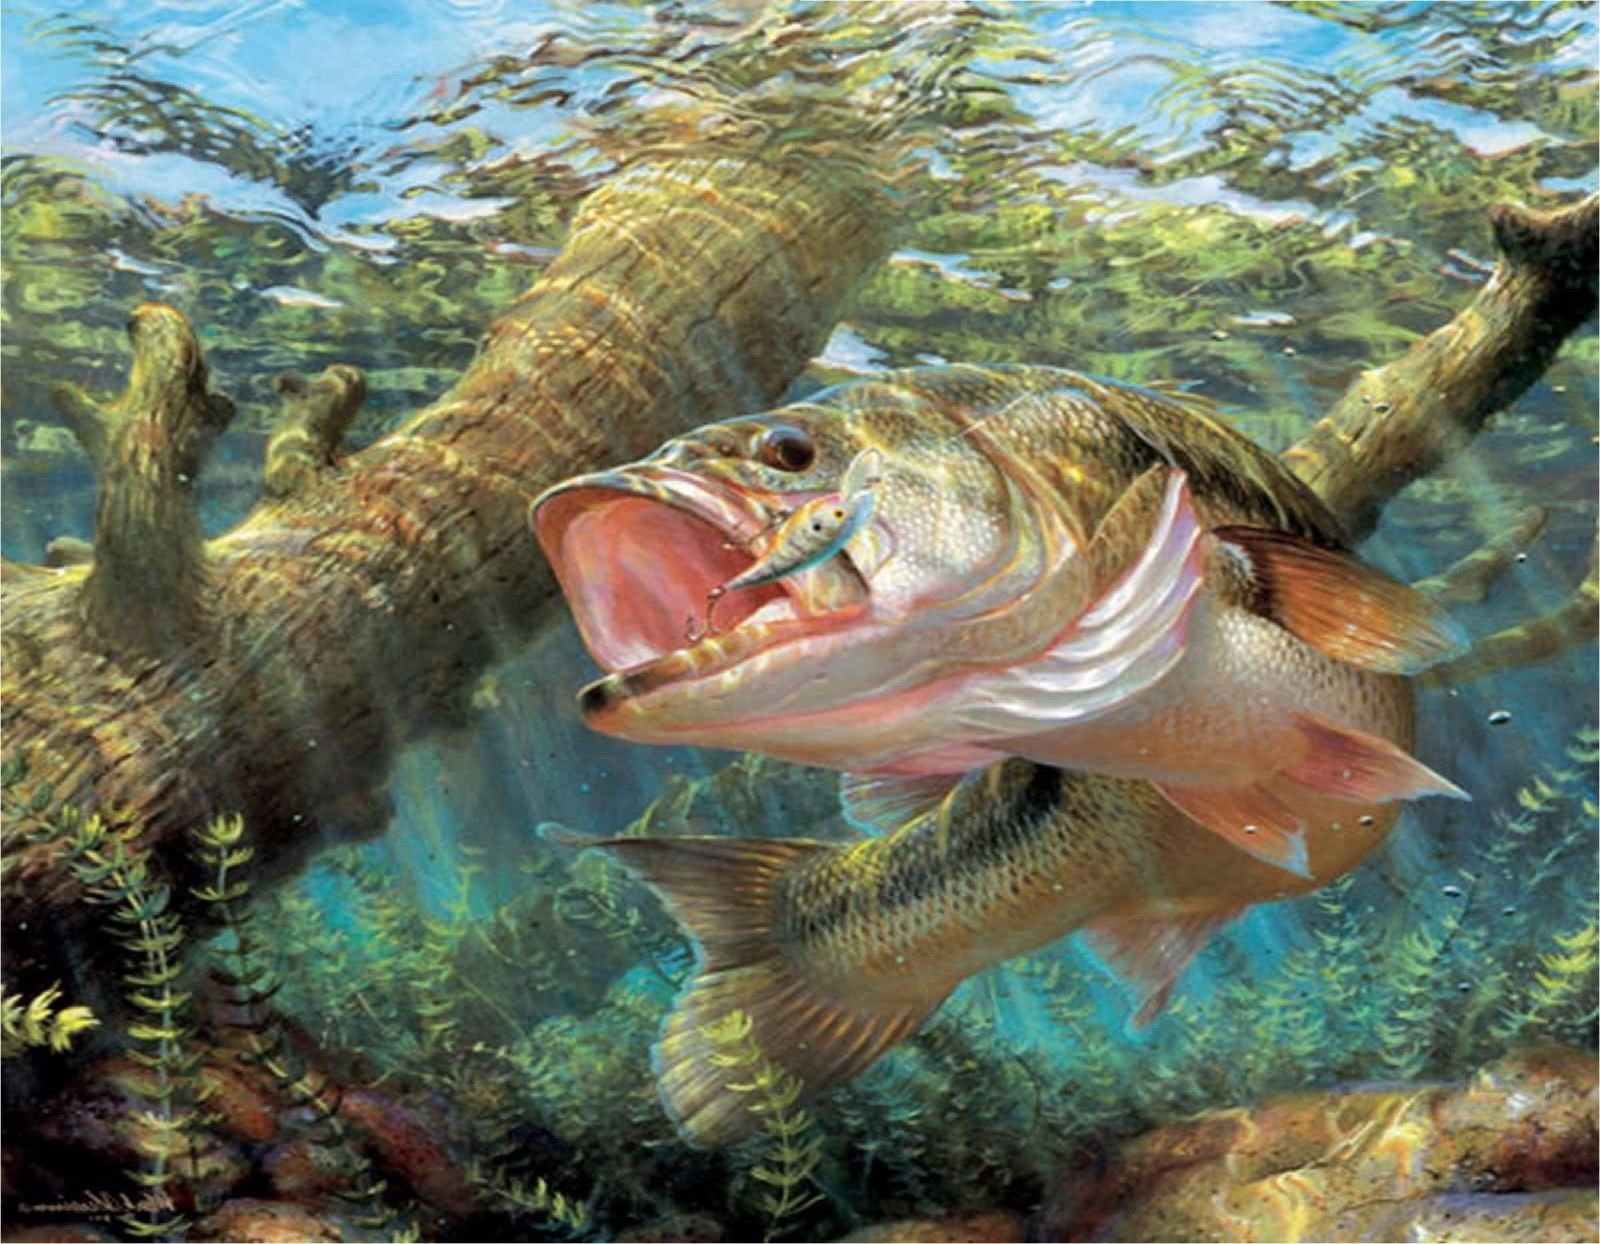 9 99 Large Mouth Bass 7 Mouse Pad Image Fabric Top Rubber Backed Ebay Electronics In 2021 Underwater Lake Fish Largemouth Bass